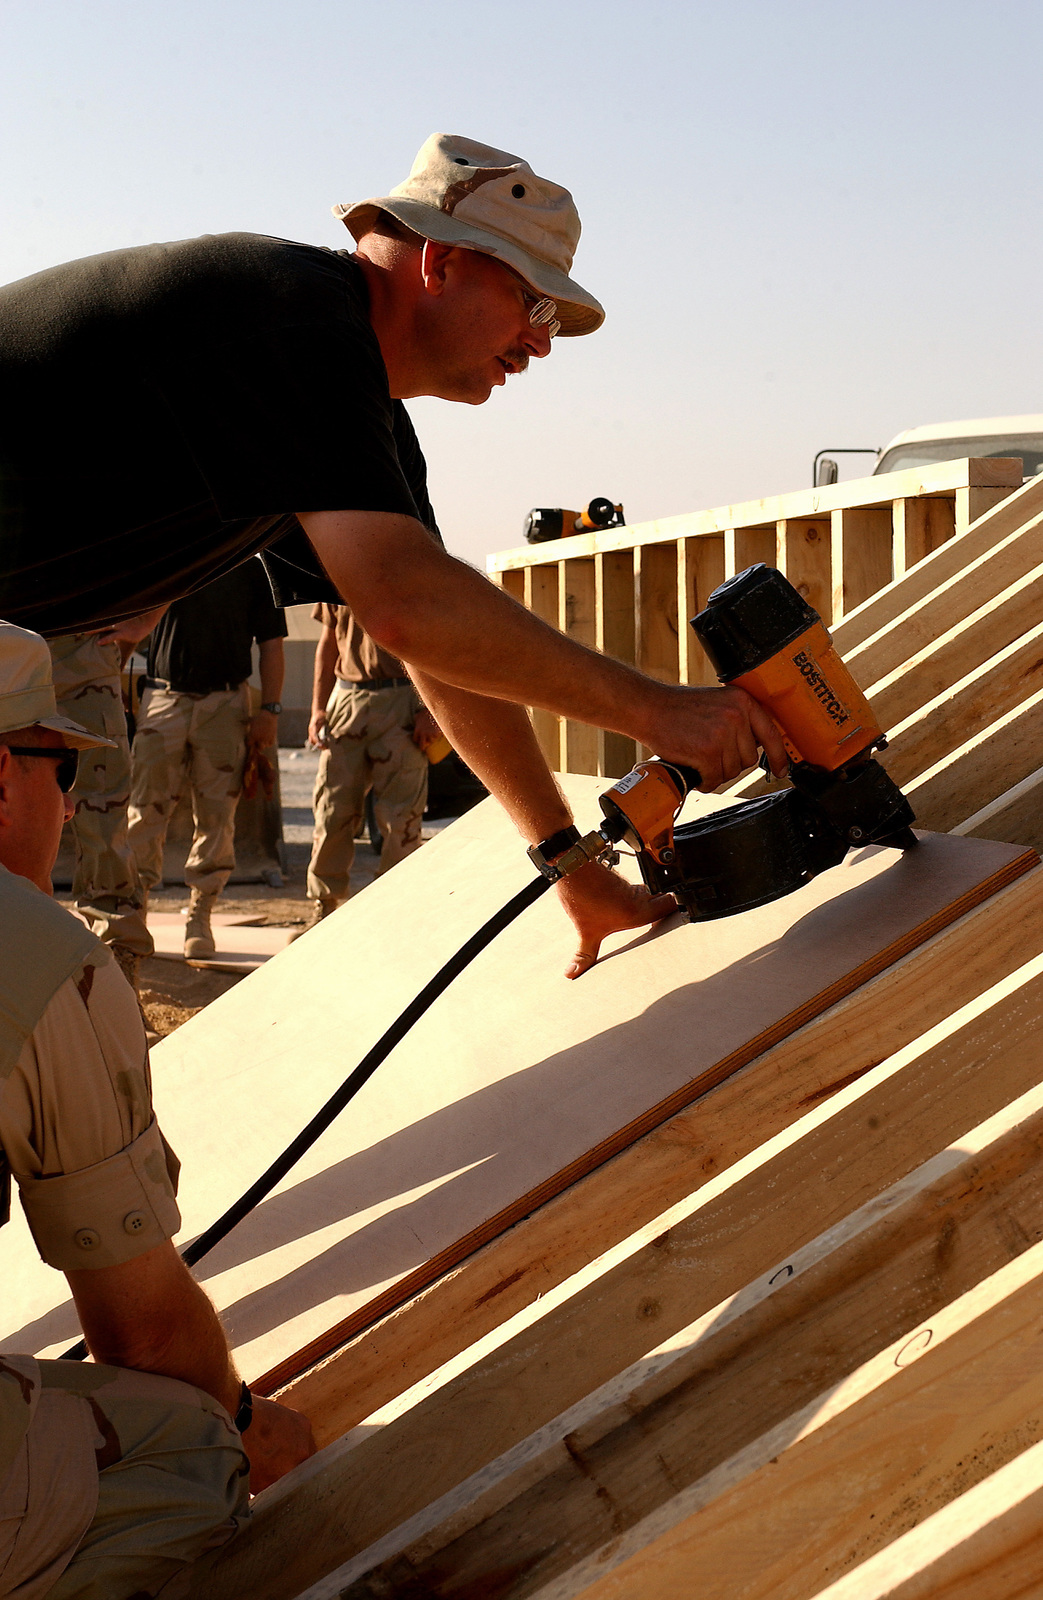 US Air Force (USAF) STAFF Sergeant (SSGT) Virgil Deaton, Structural Craftsman, 320th Expeditionary Civil Engineering Squadron (ECES), uses a nail gun to attach a board onto a support wall for a bunker at a forward deployed location. The bunkers are part of the continuous build up at forward-deployed locations supporting Operation ENDURING FREEDOM